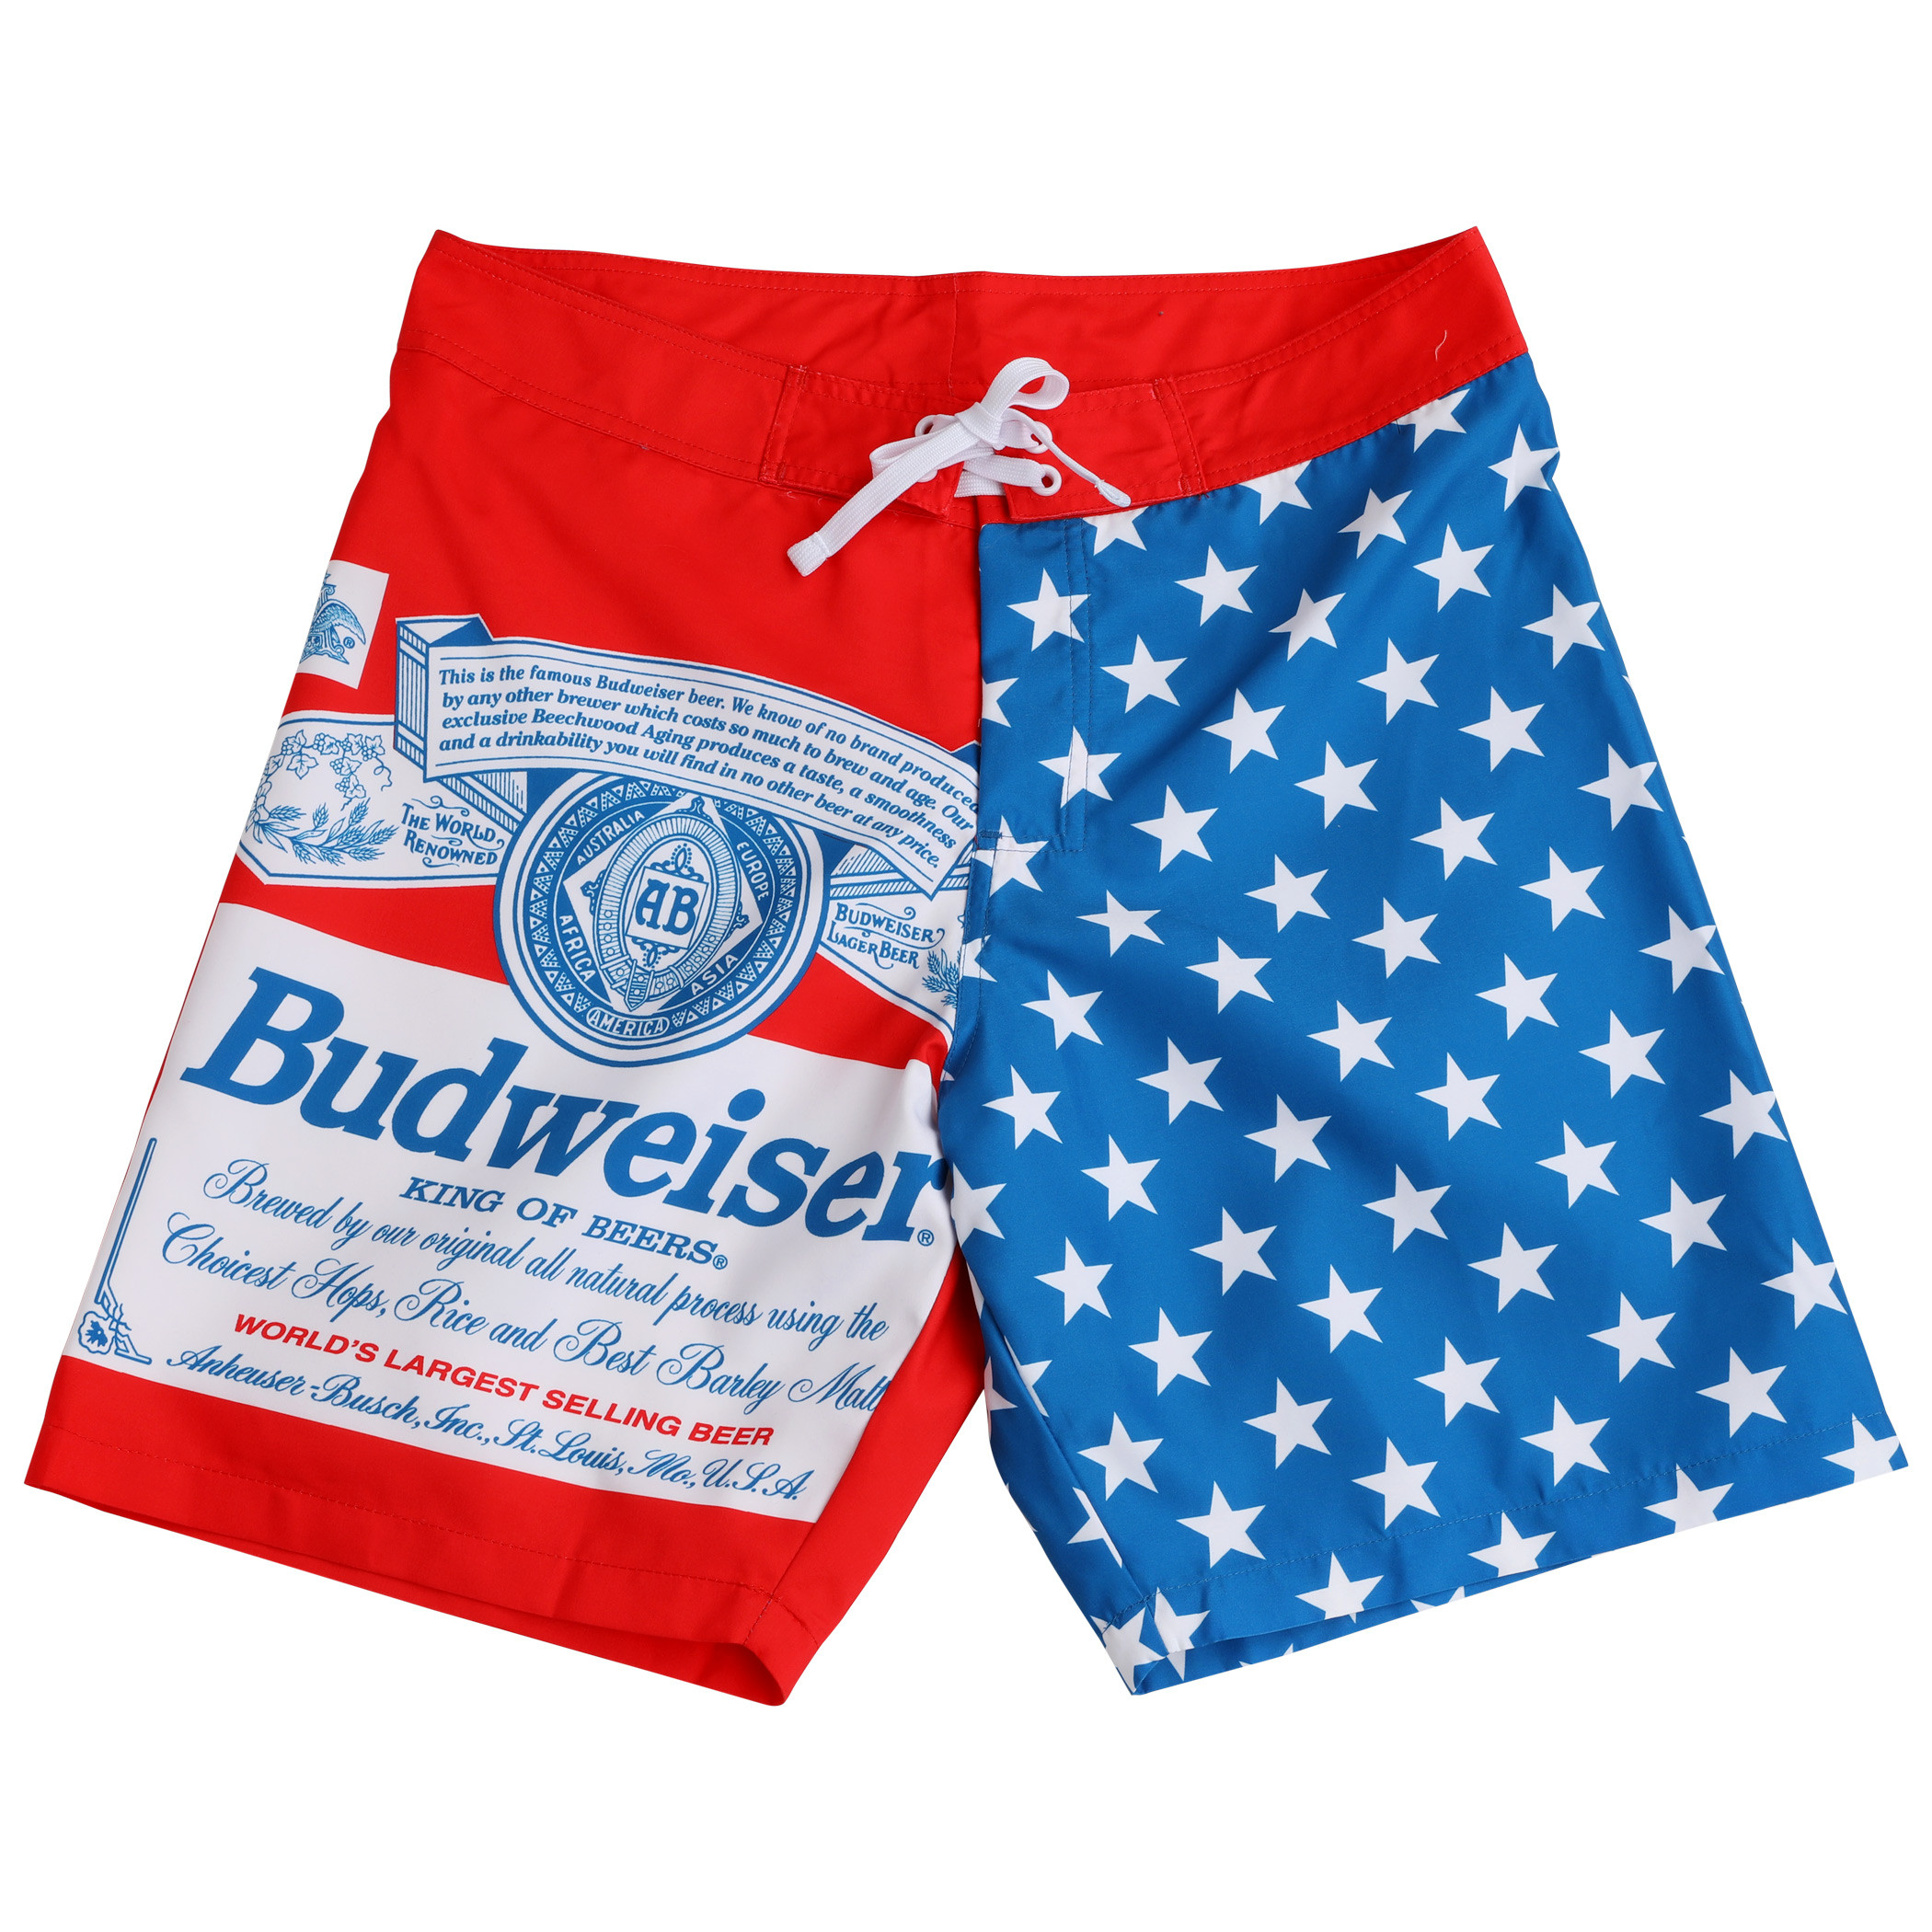 Budweiser Stars and Stripes Board Shorts